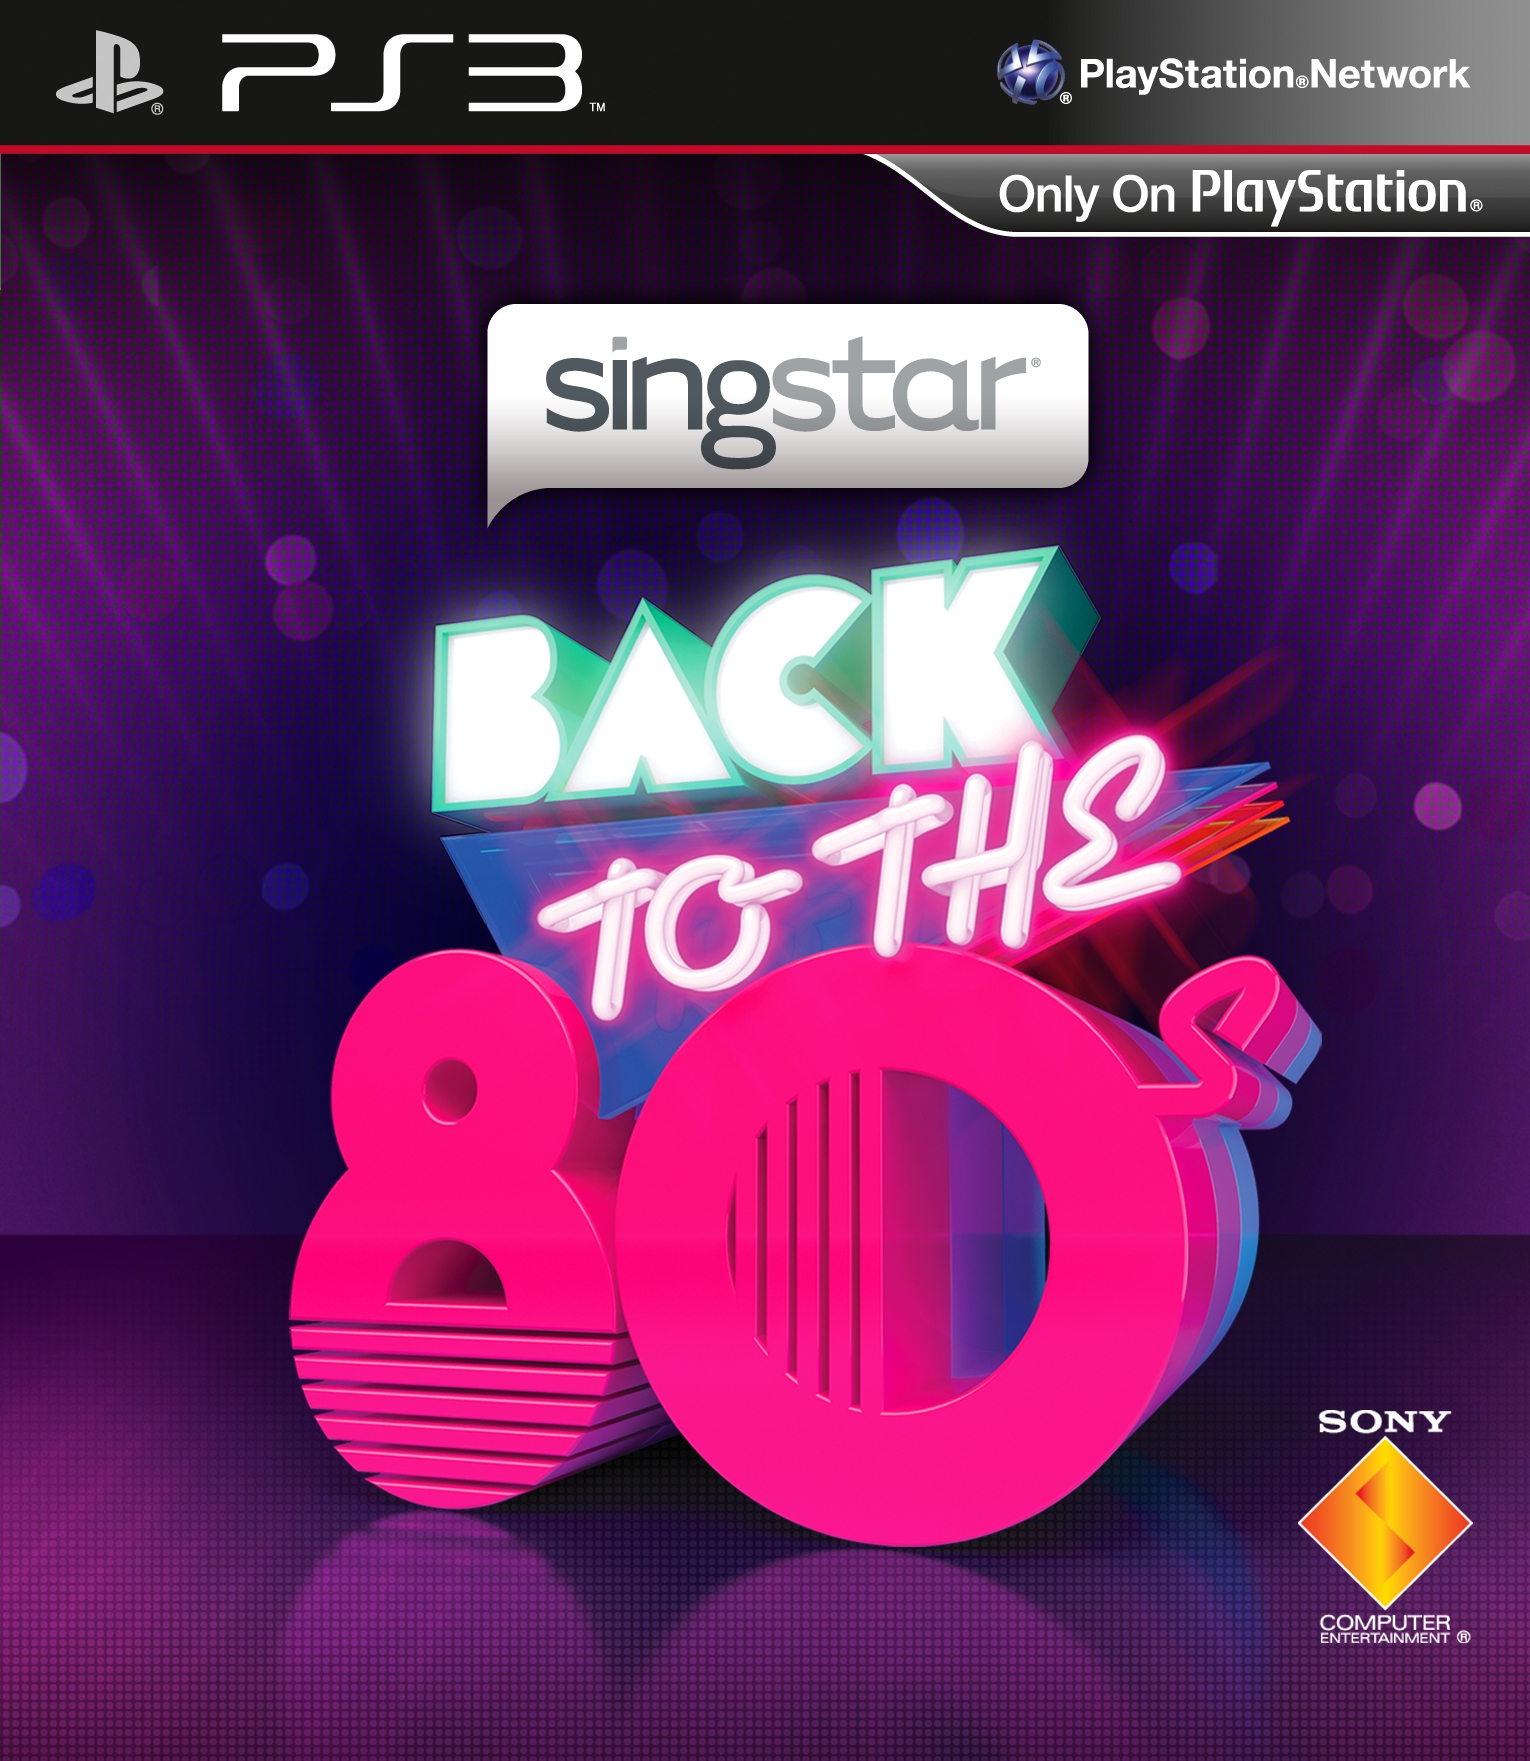 SingStar: Back to the 80's